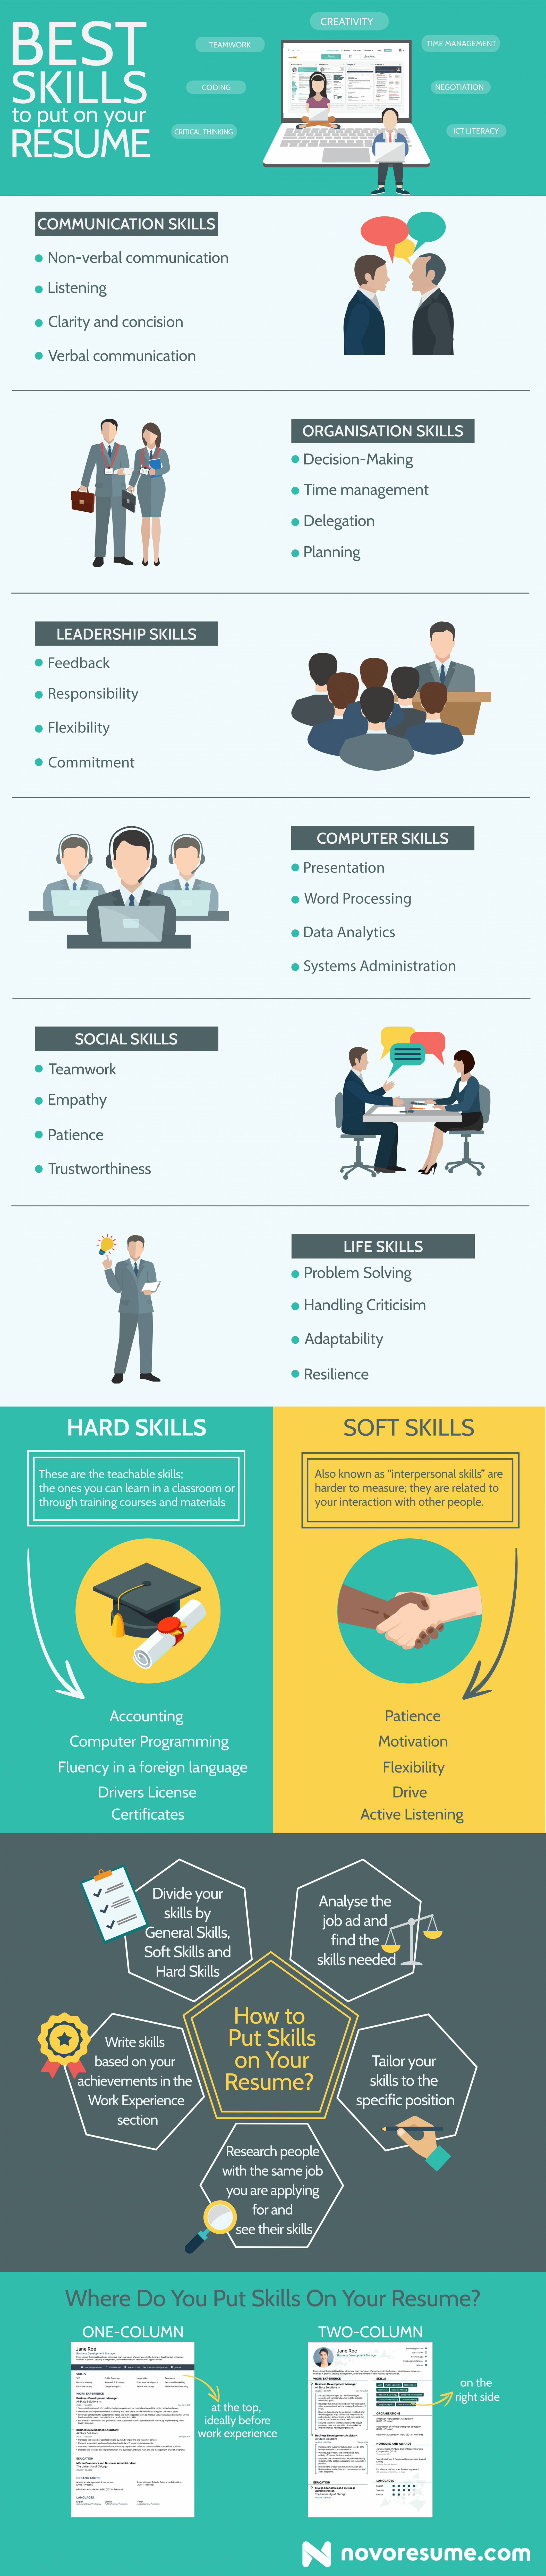 the 8 best skills to put on your resume  infographic